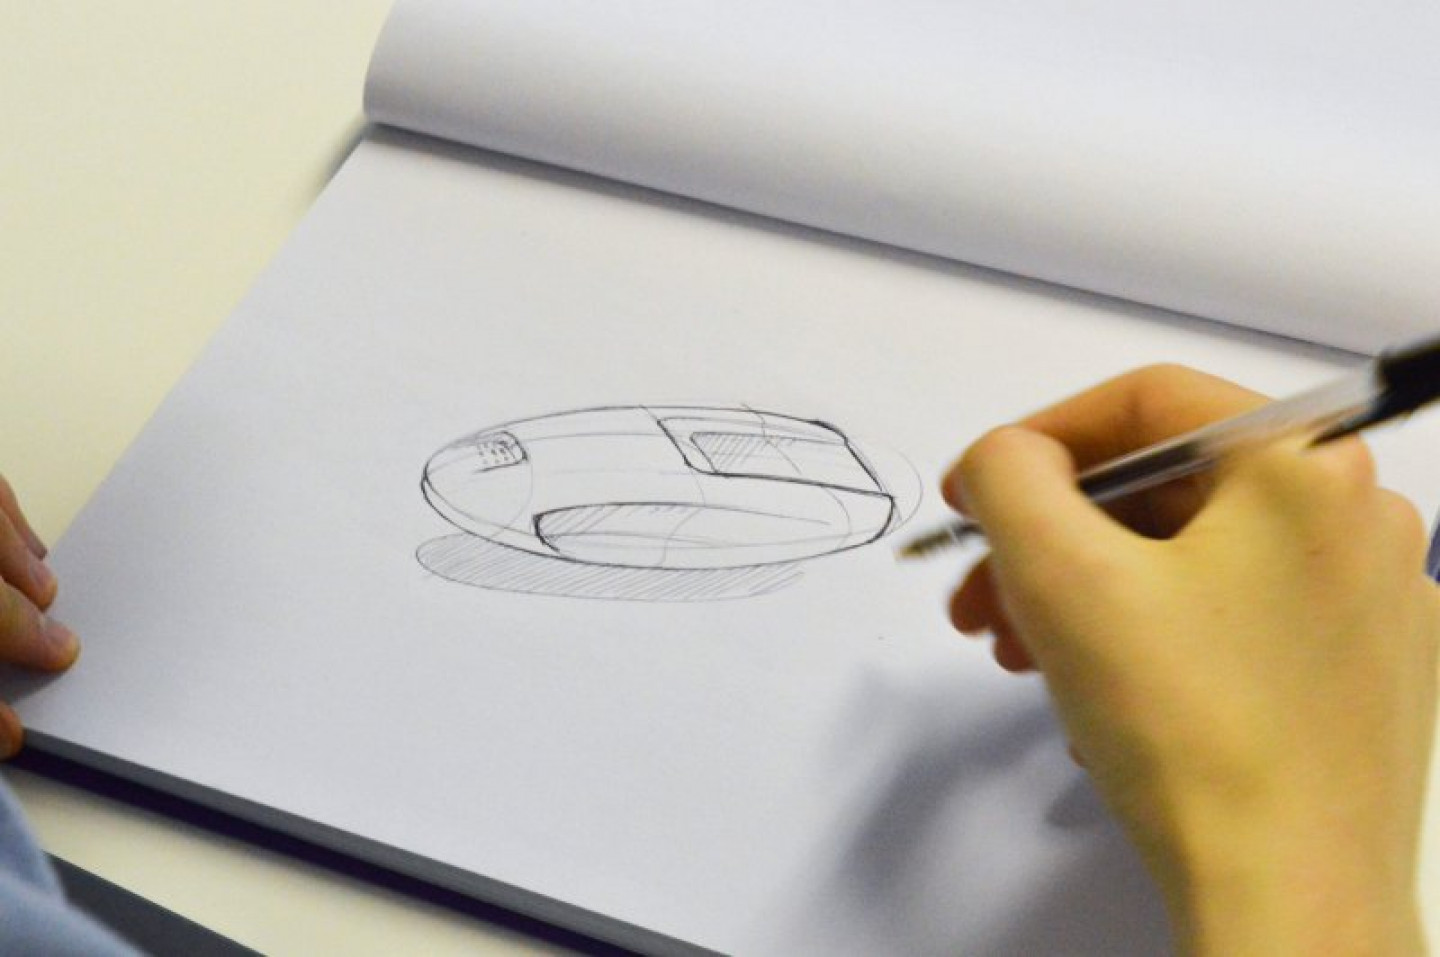 Sketching your idea